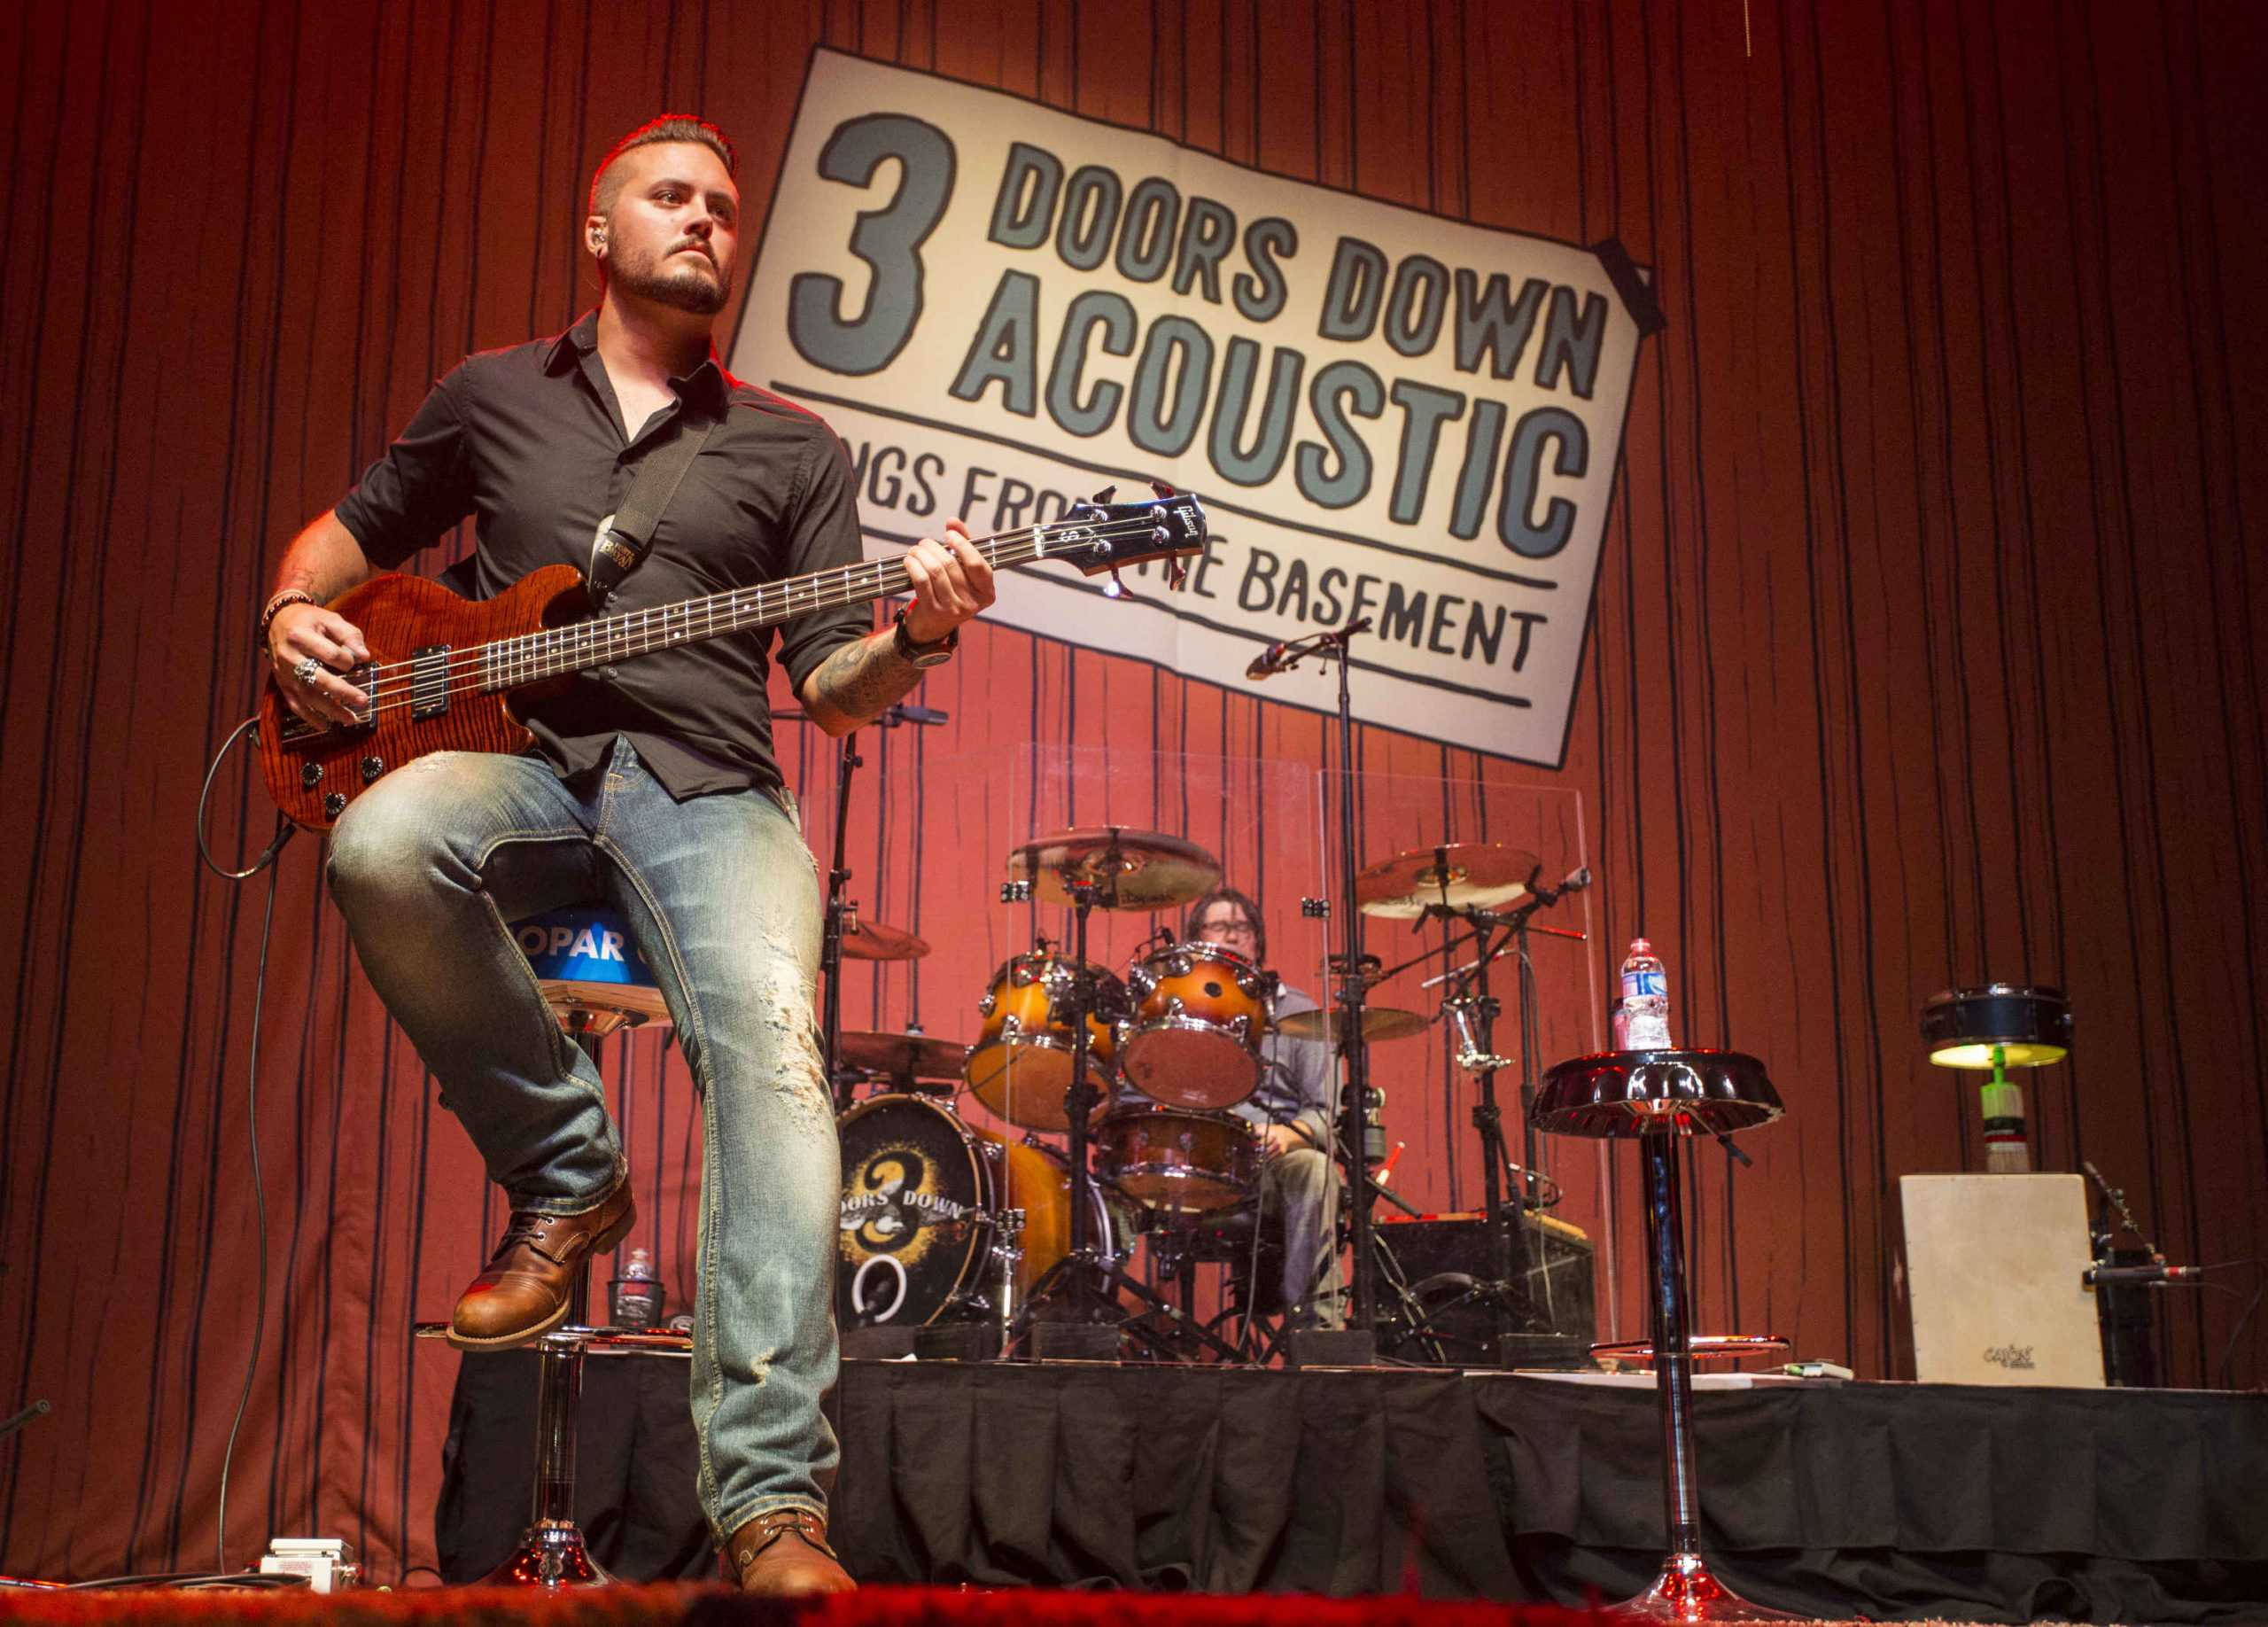 Justin Biltonen and Greg Upchurch with 3 Doors Down performs during the Songs From the Basement Tour at The Tabernacle on Wednesday, Sep. 10, 2014, in Atlanta. 3 Doors Down will perform at the Carrollton Festival on Nov. 7. (Photo by Katie Darby/Invision/AP)